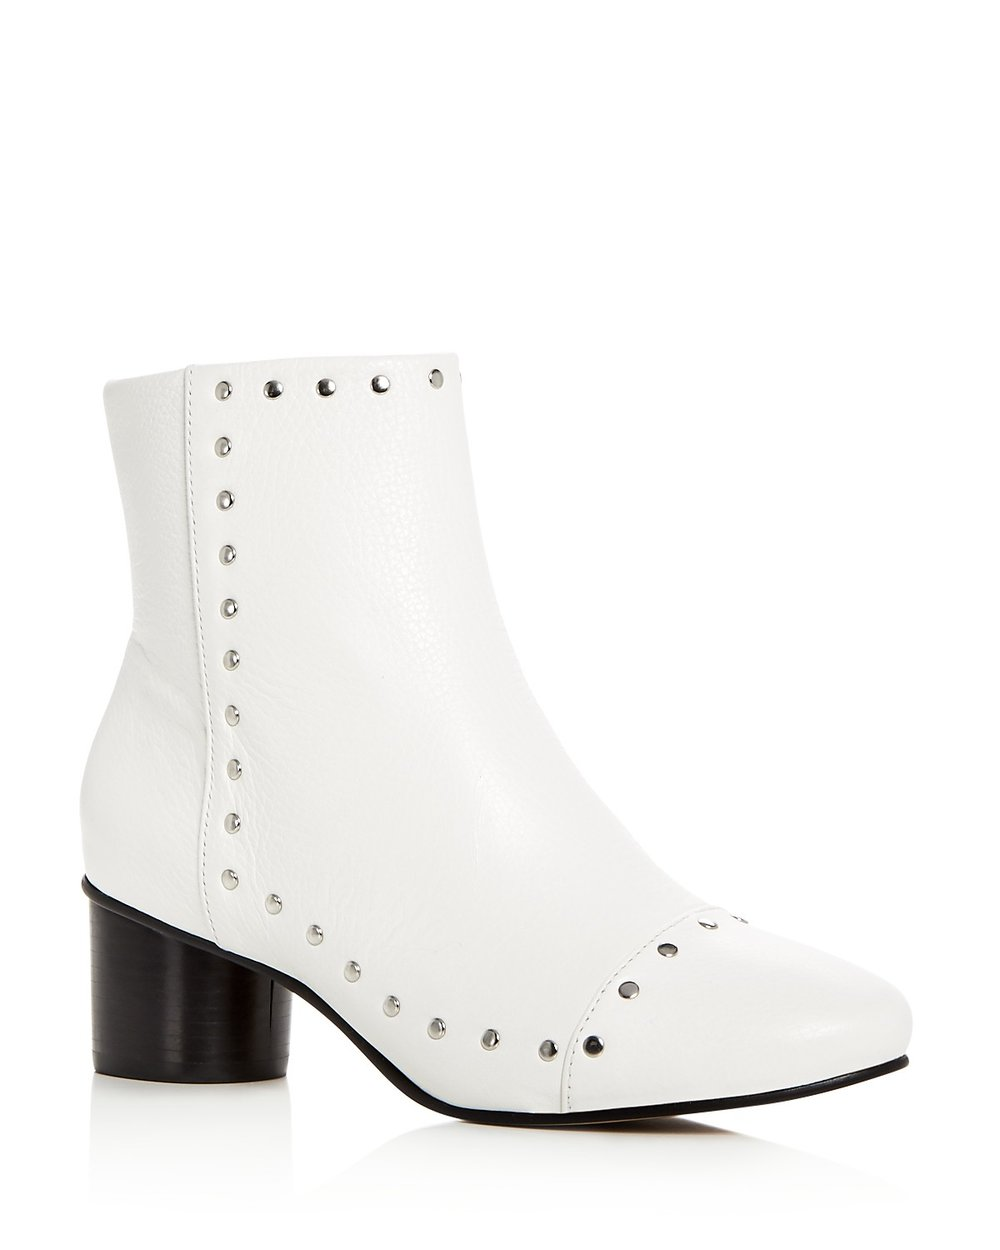 REBECCA MINKOFF STUDDED WHITE BOOTIES